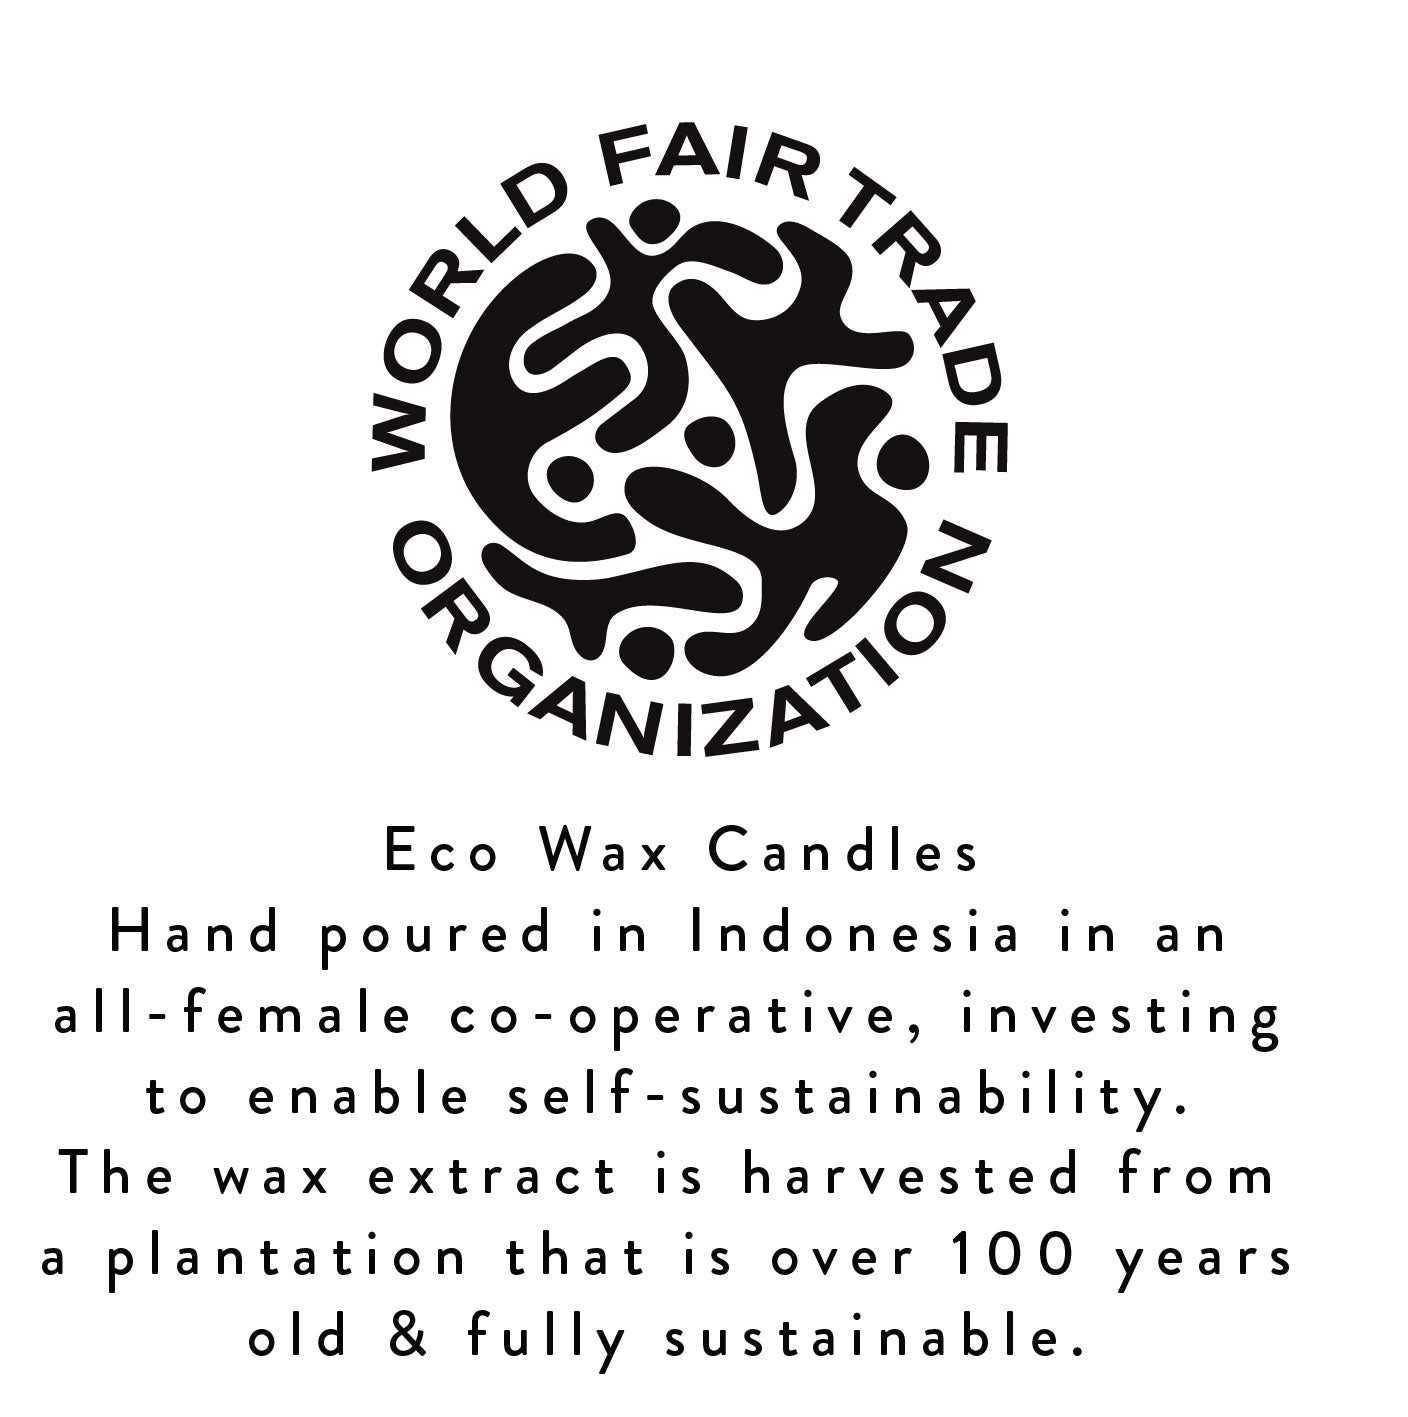 Fair Trade Eco Wax Candles-History